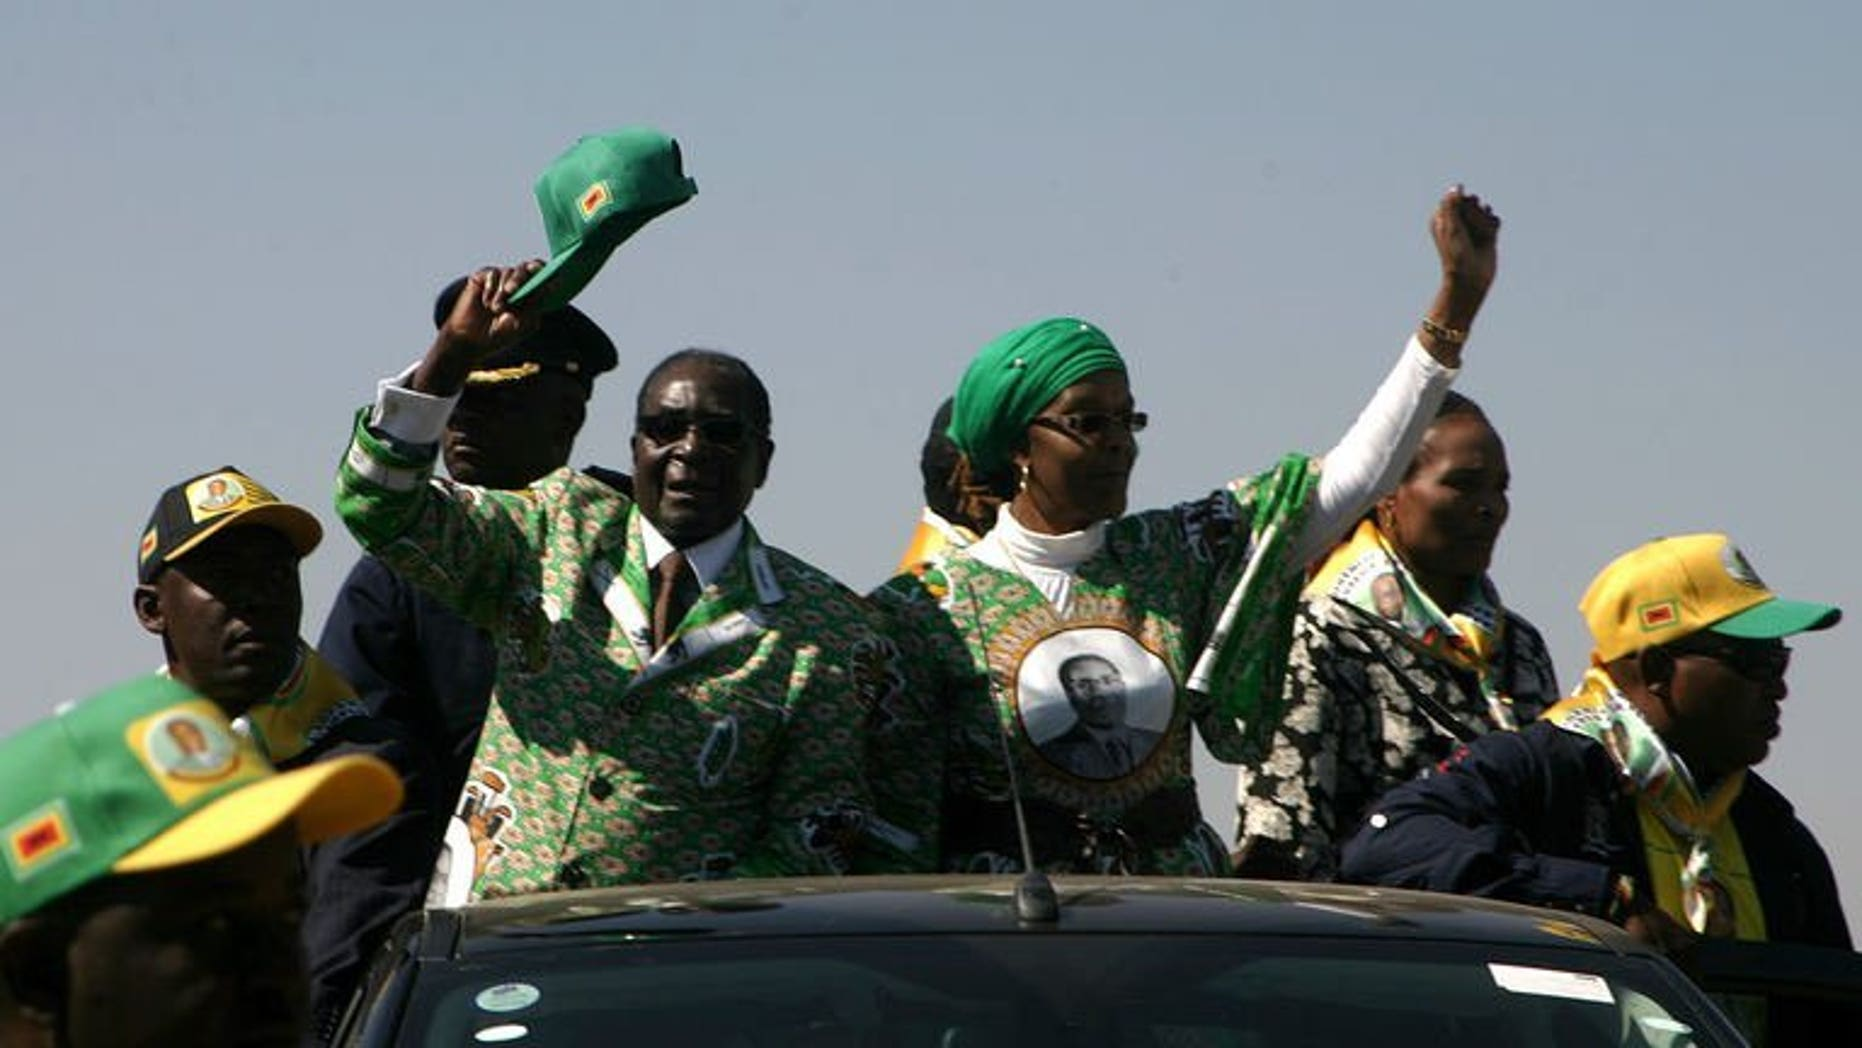 Zimbabwe's President Robert Mugabe (2nd L) waves as he arrives to address crowds gathered during an election campaign rally held at Chibuku Stadium, in Chitungwiza on July 16, 2013. Mugabe on Saturday warned South Africa's Jacob Zuma to stop his top mediator from commenting on the country's political crisis, as the veteran leader stepped up electioneering.